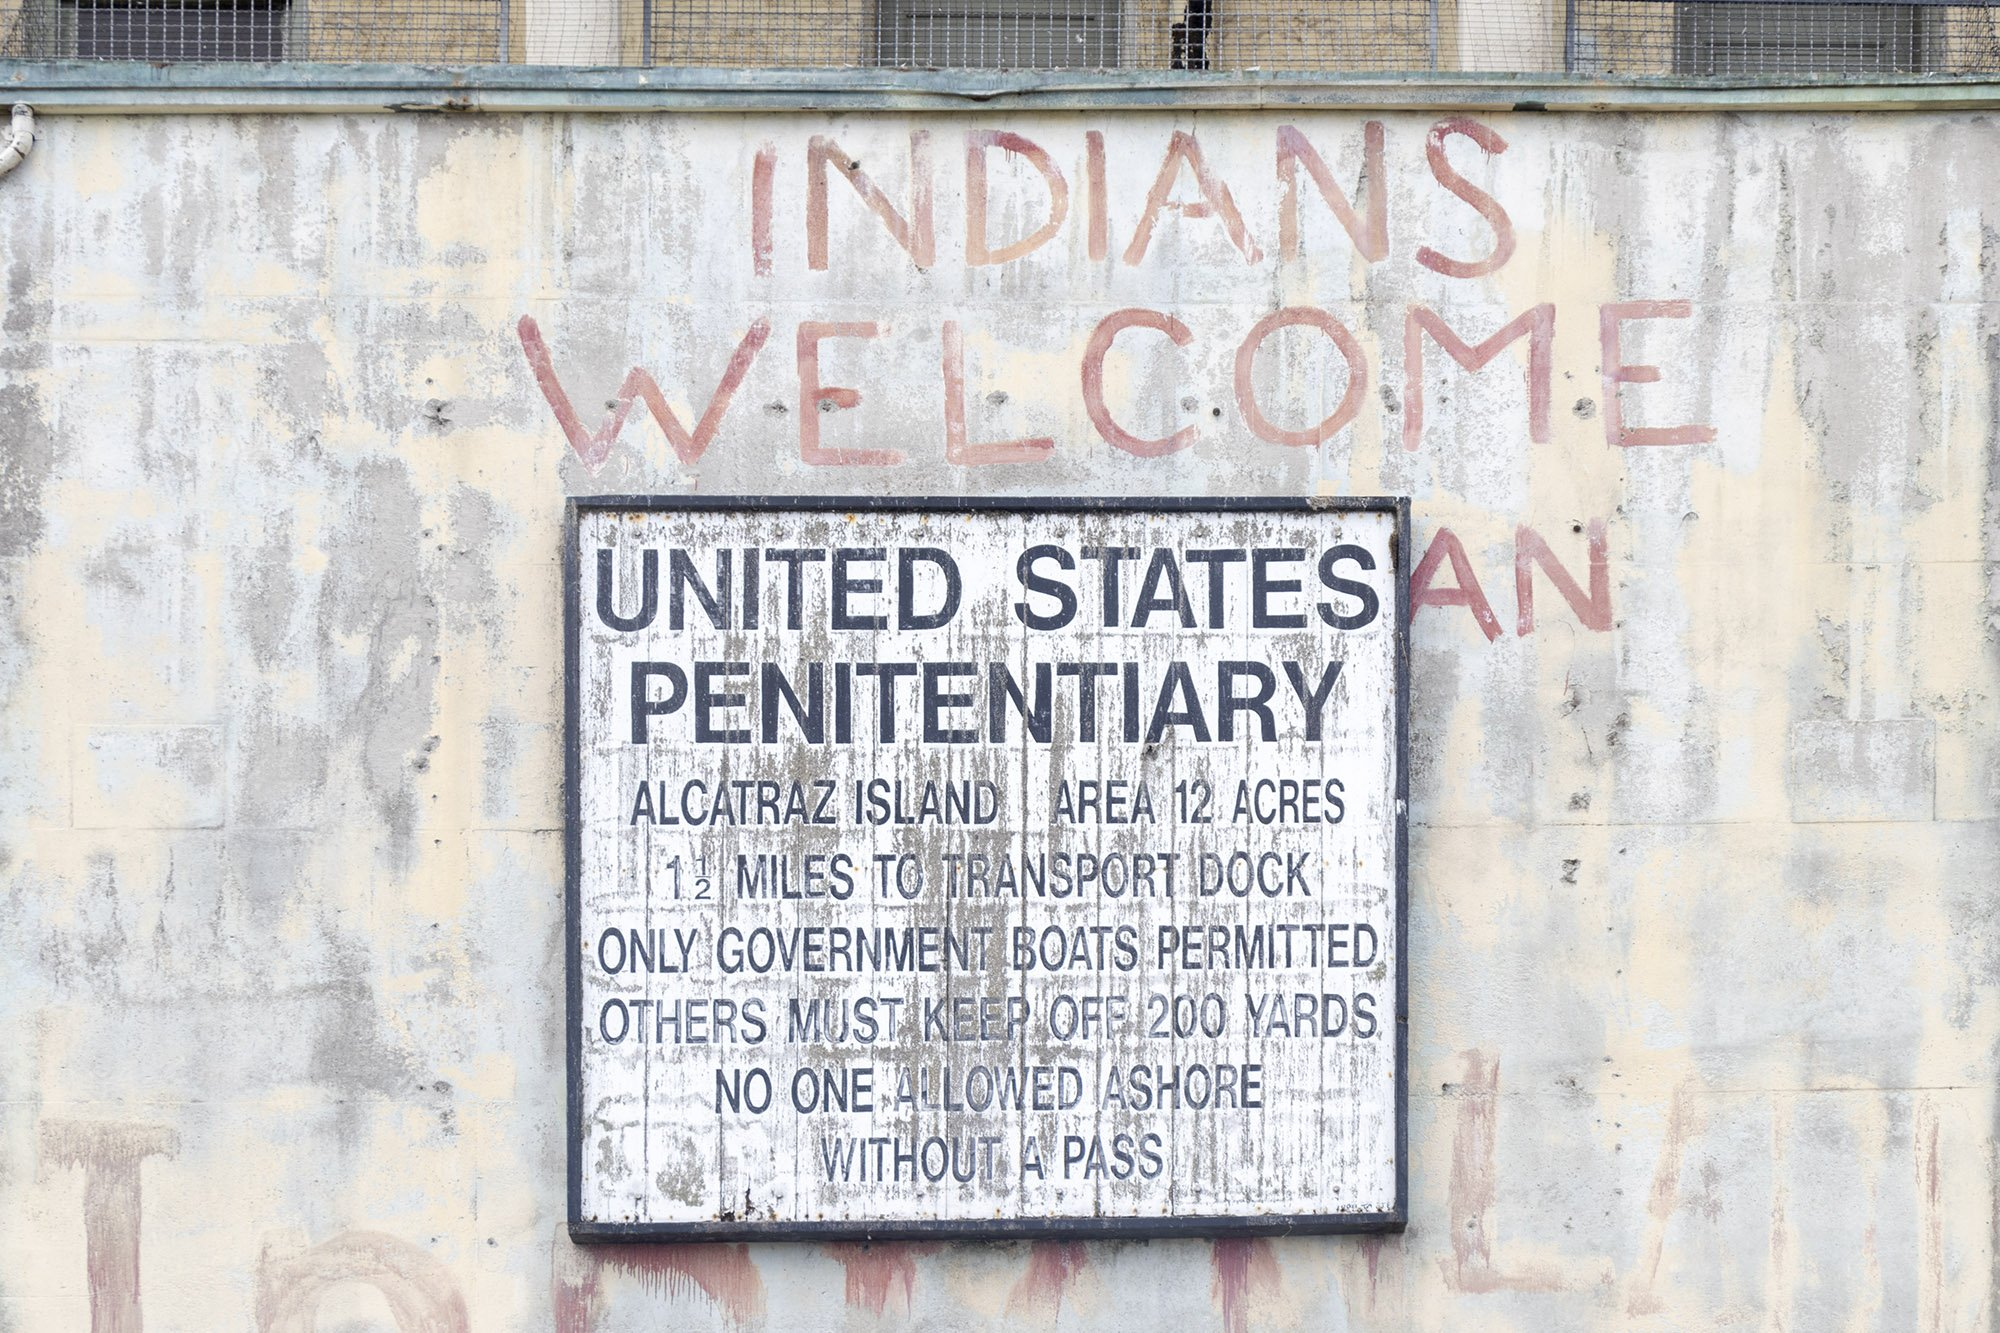 Alcatraz United States Penitentiary sign